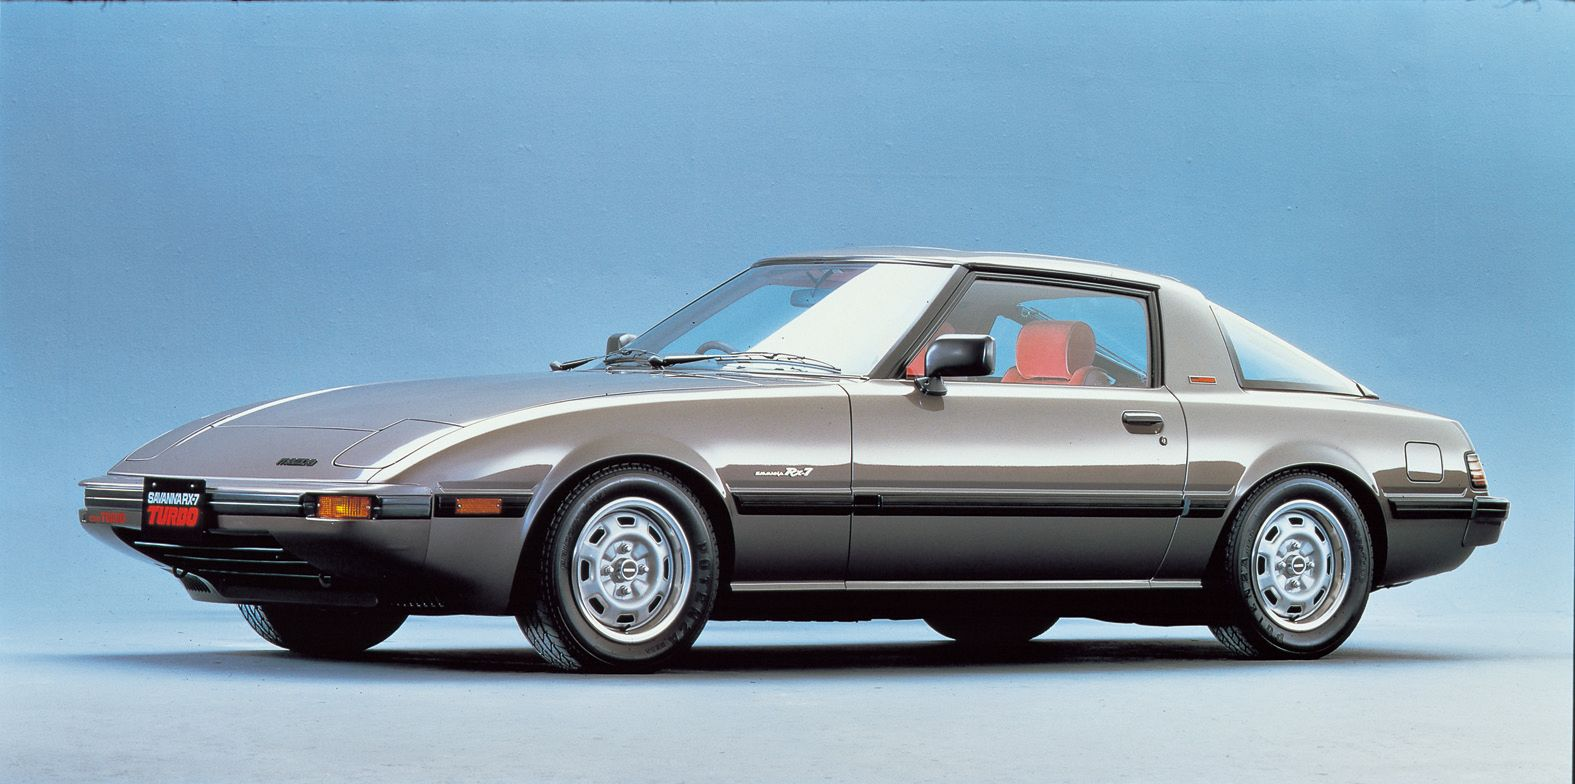 Mazda RX-7 Savanna Turbo 1981